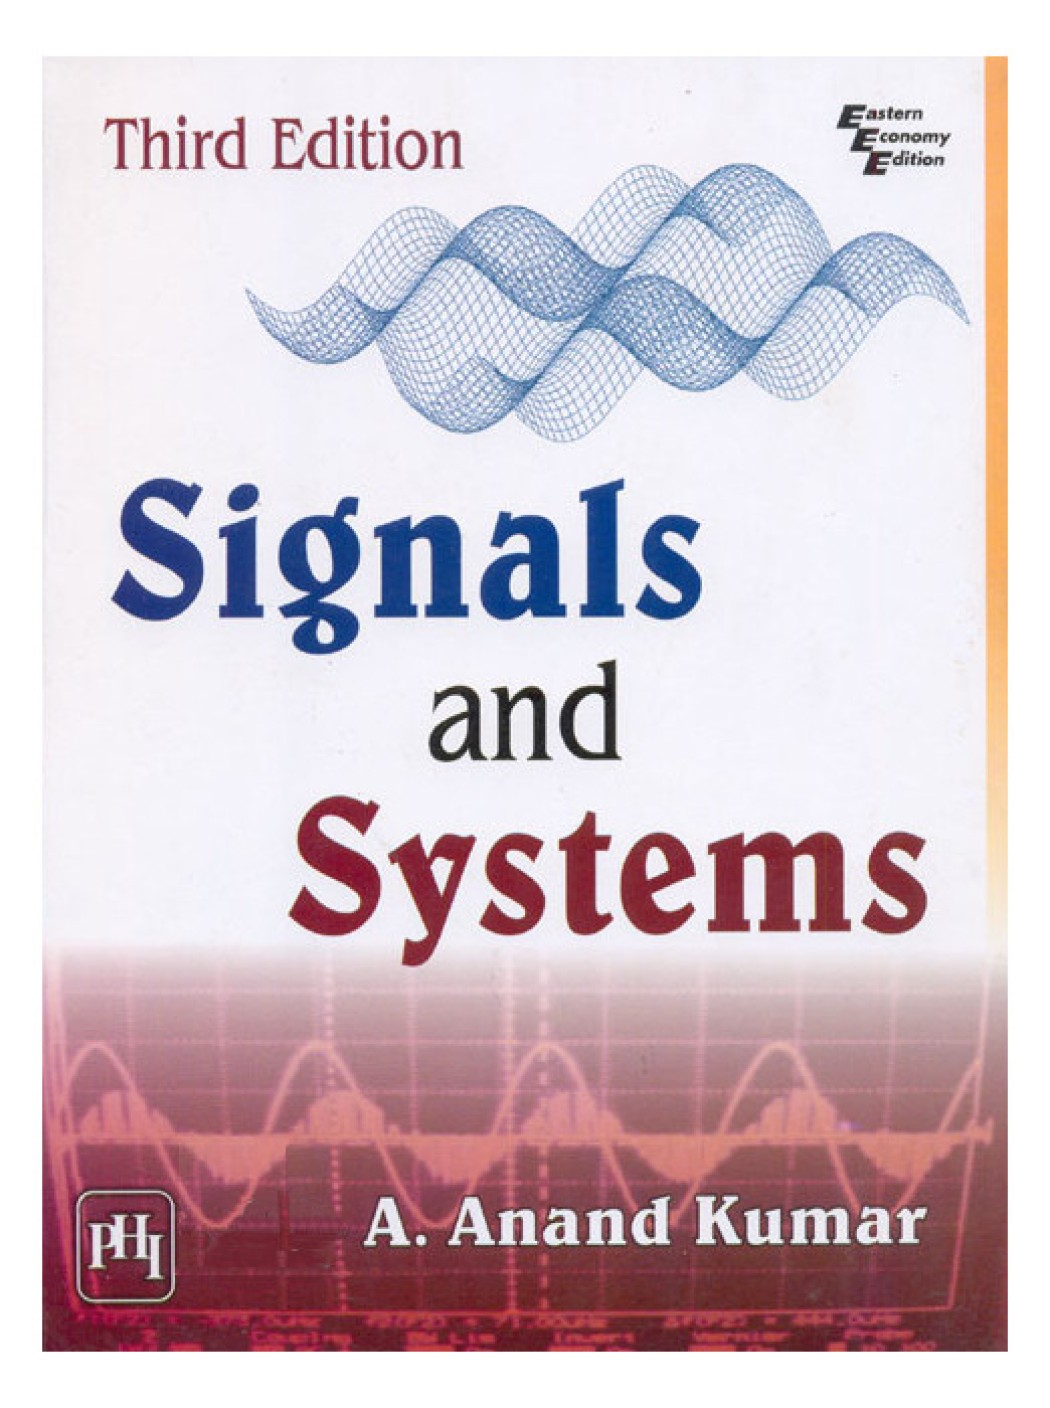 Signals and Systems 3rd Edition - Buy Signals and Systems 3rd